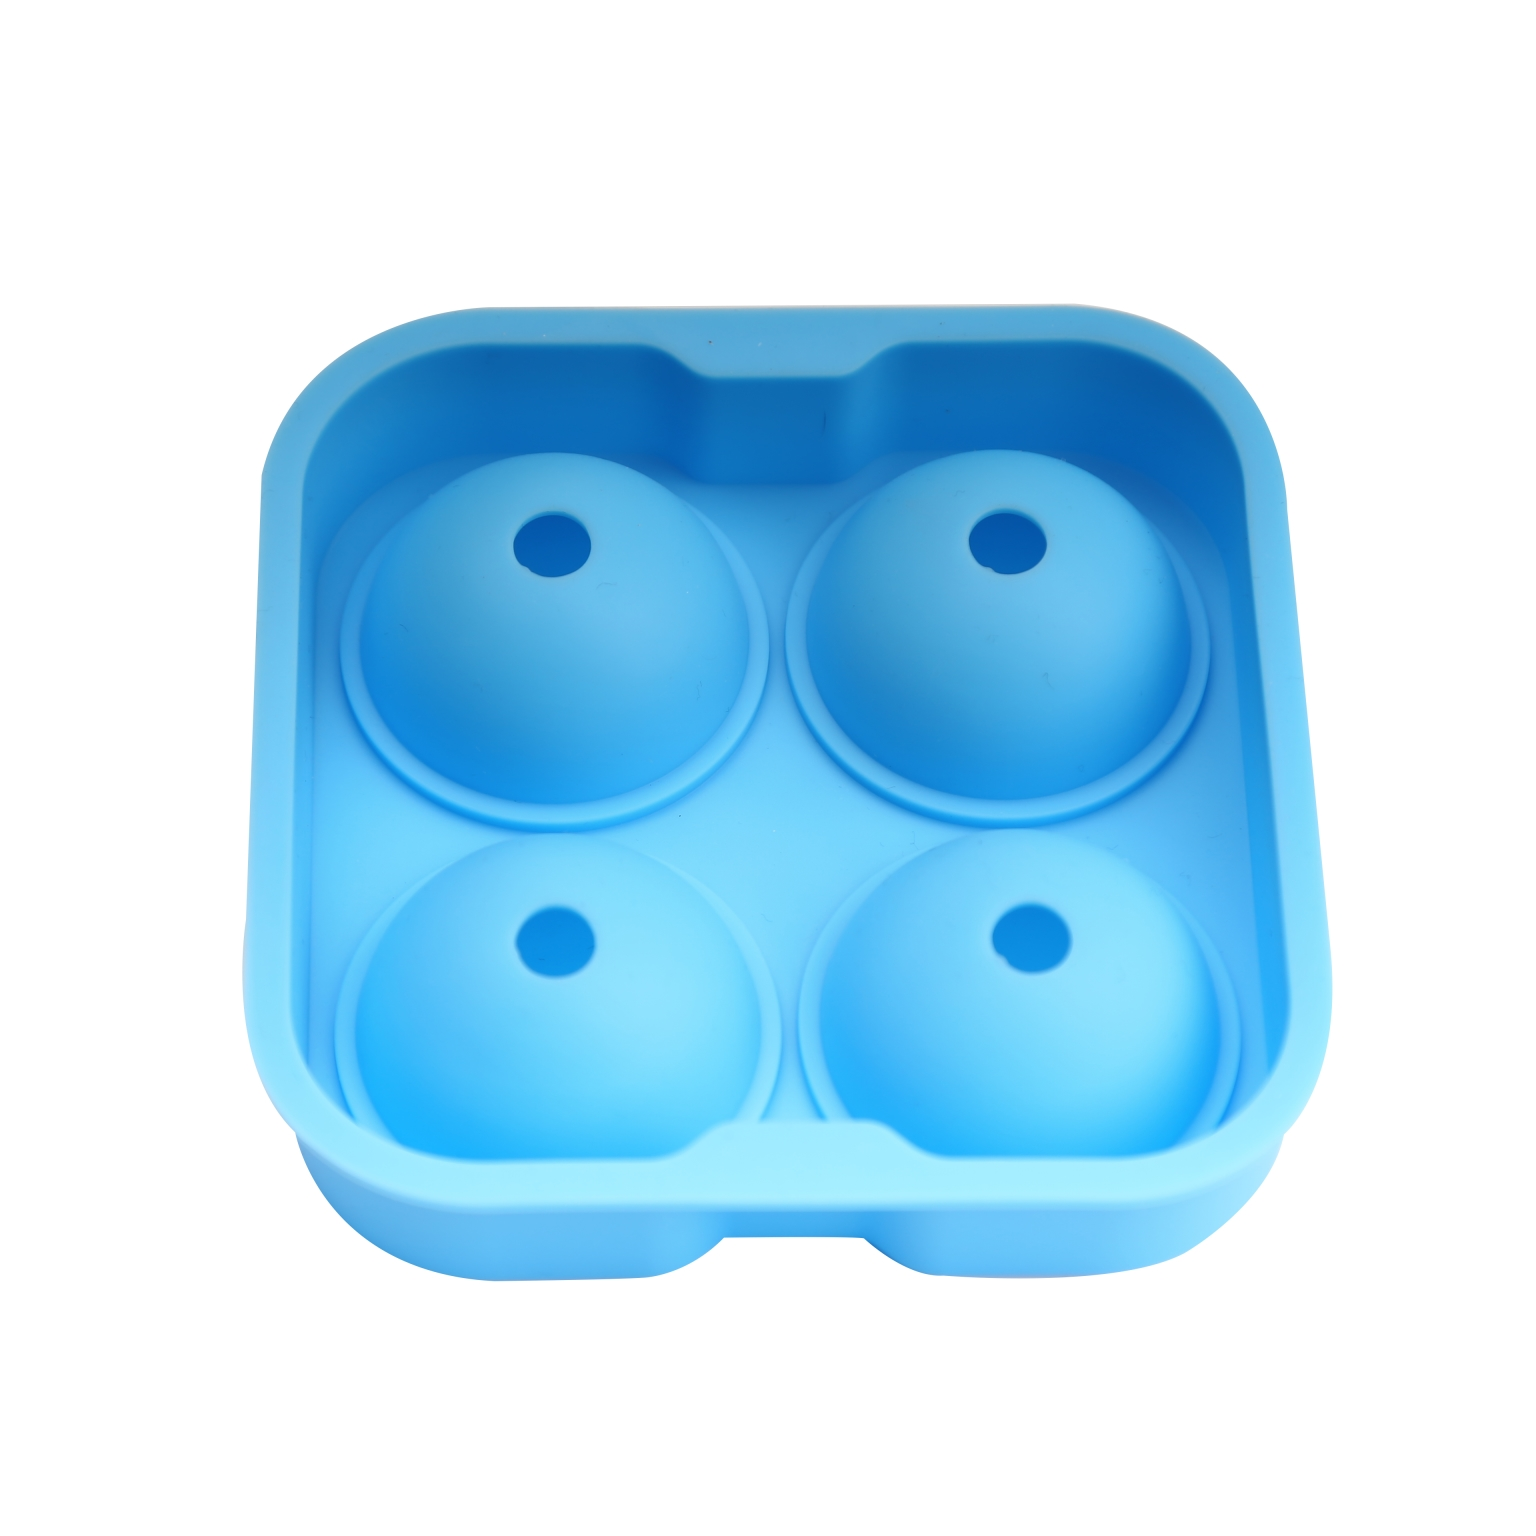 Customized high quality silicone ice ball mold with 4 ball